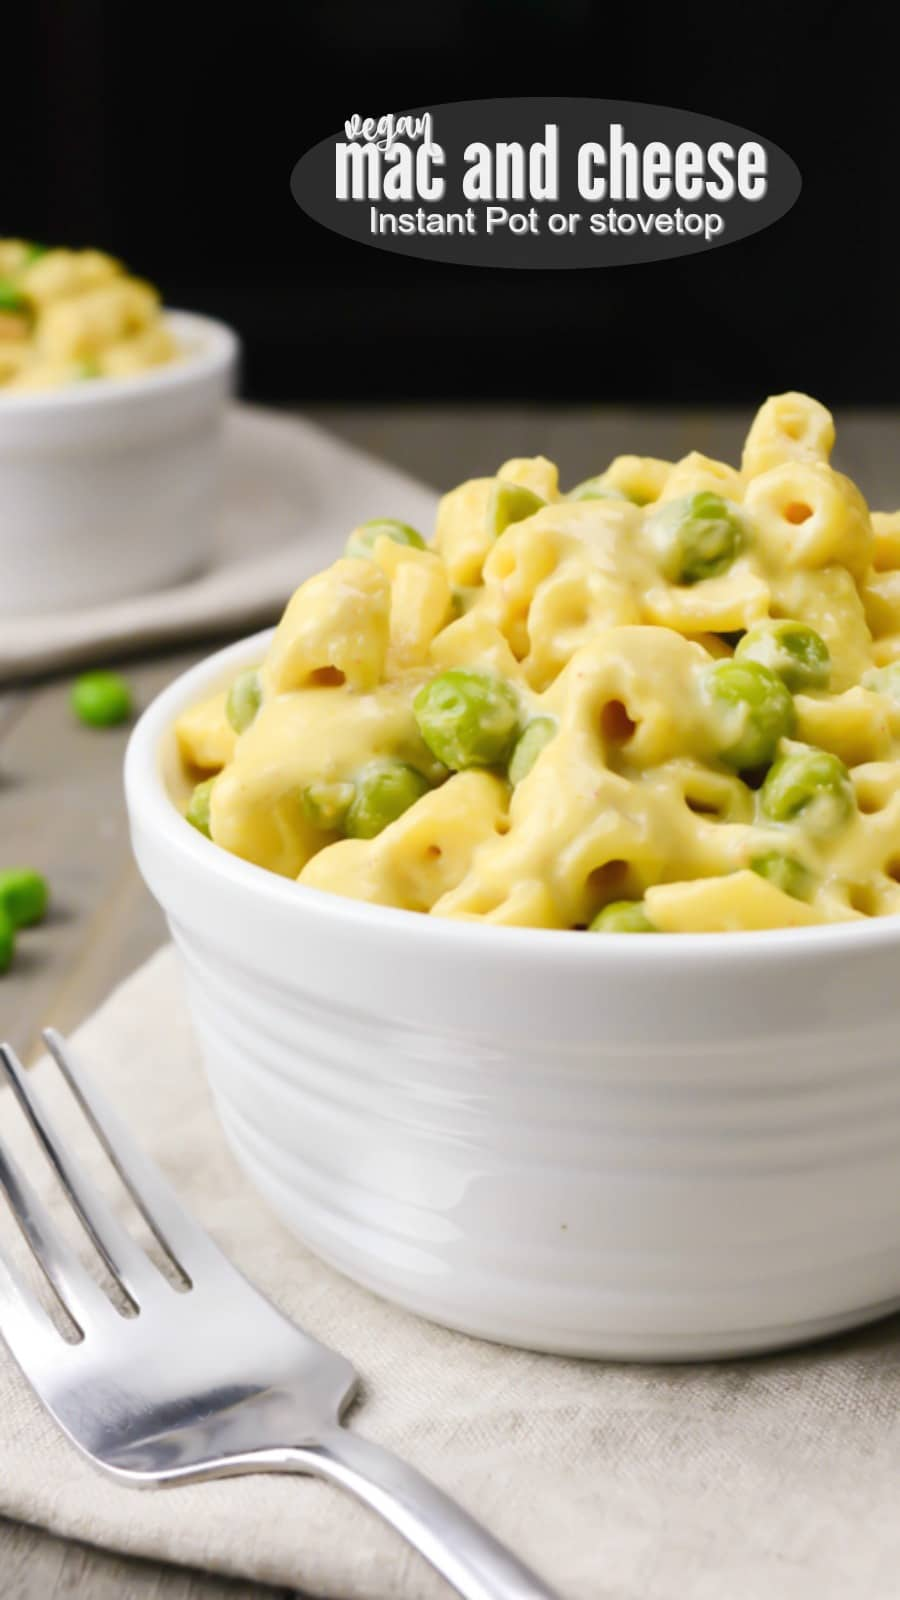 A Vegan Mac and Cheese so creamy and cheesy it's the perfect dairy free alternative! This classic comfort food can be made stovetop or in the Instant-Pot. #vegan #dairyfree #plantbased #meatlessmonday #veganrecipes #instantpotrecipes